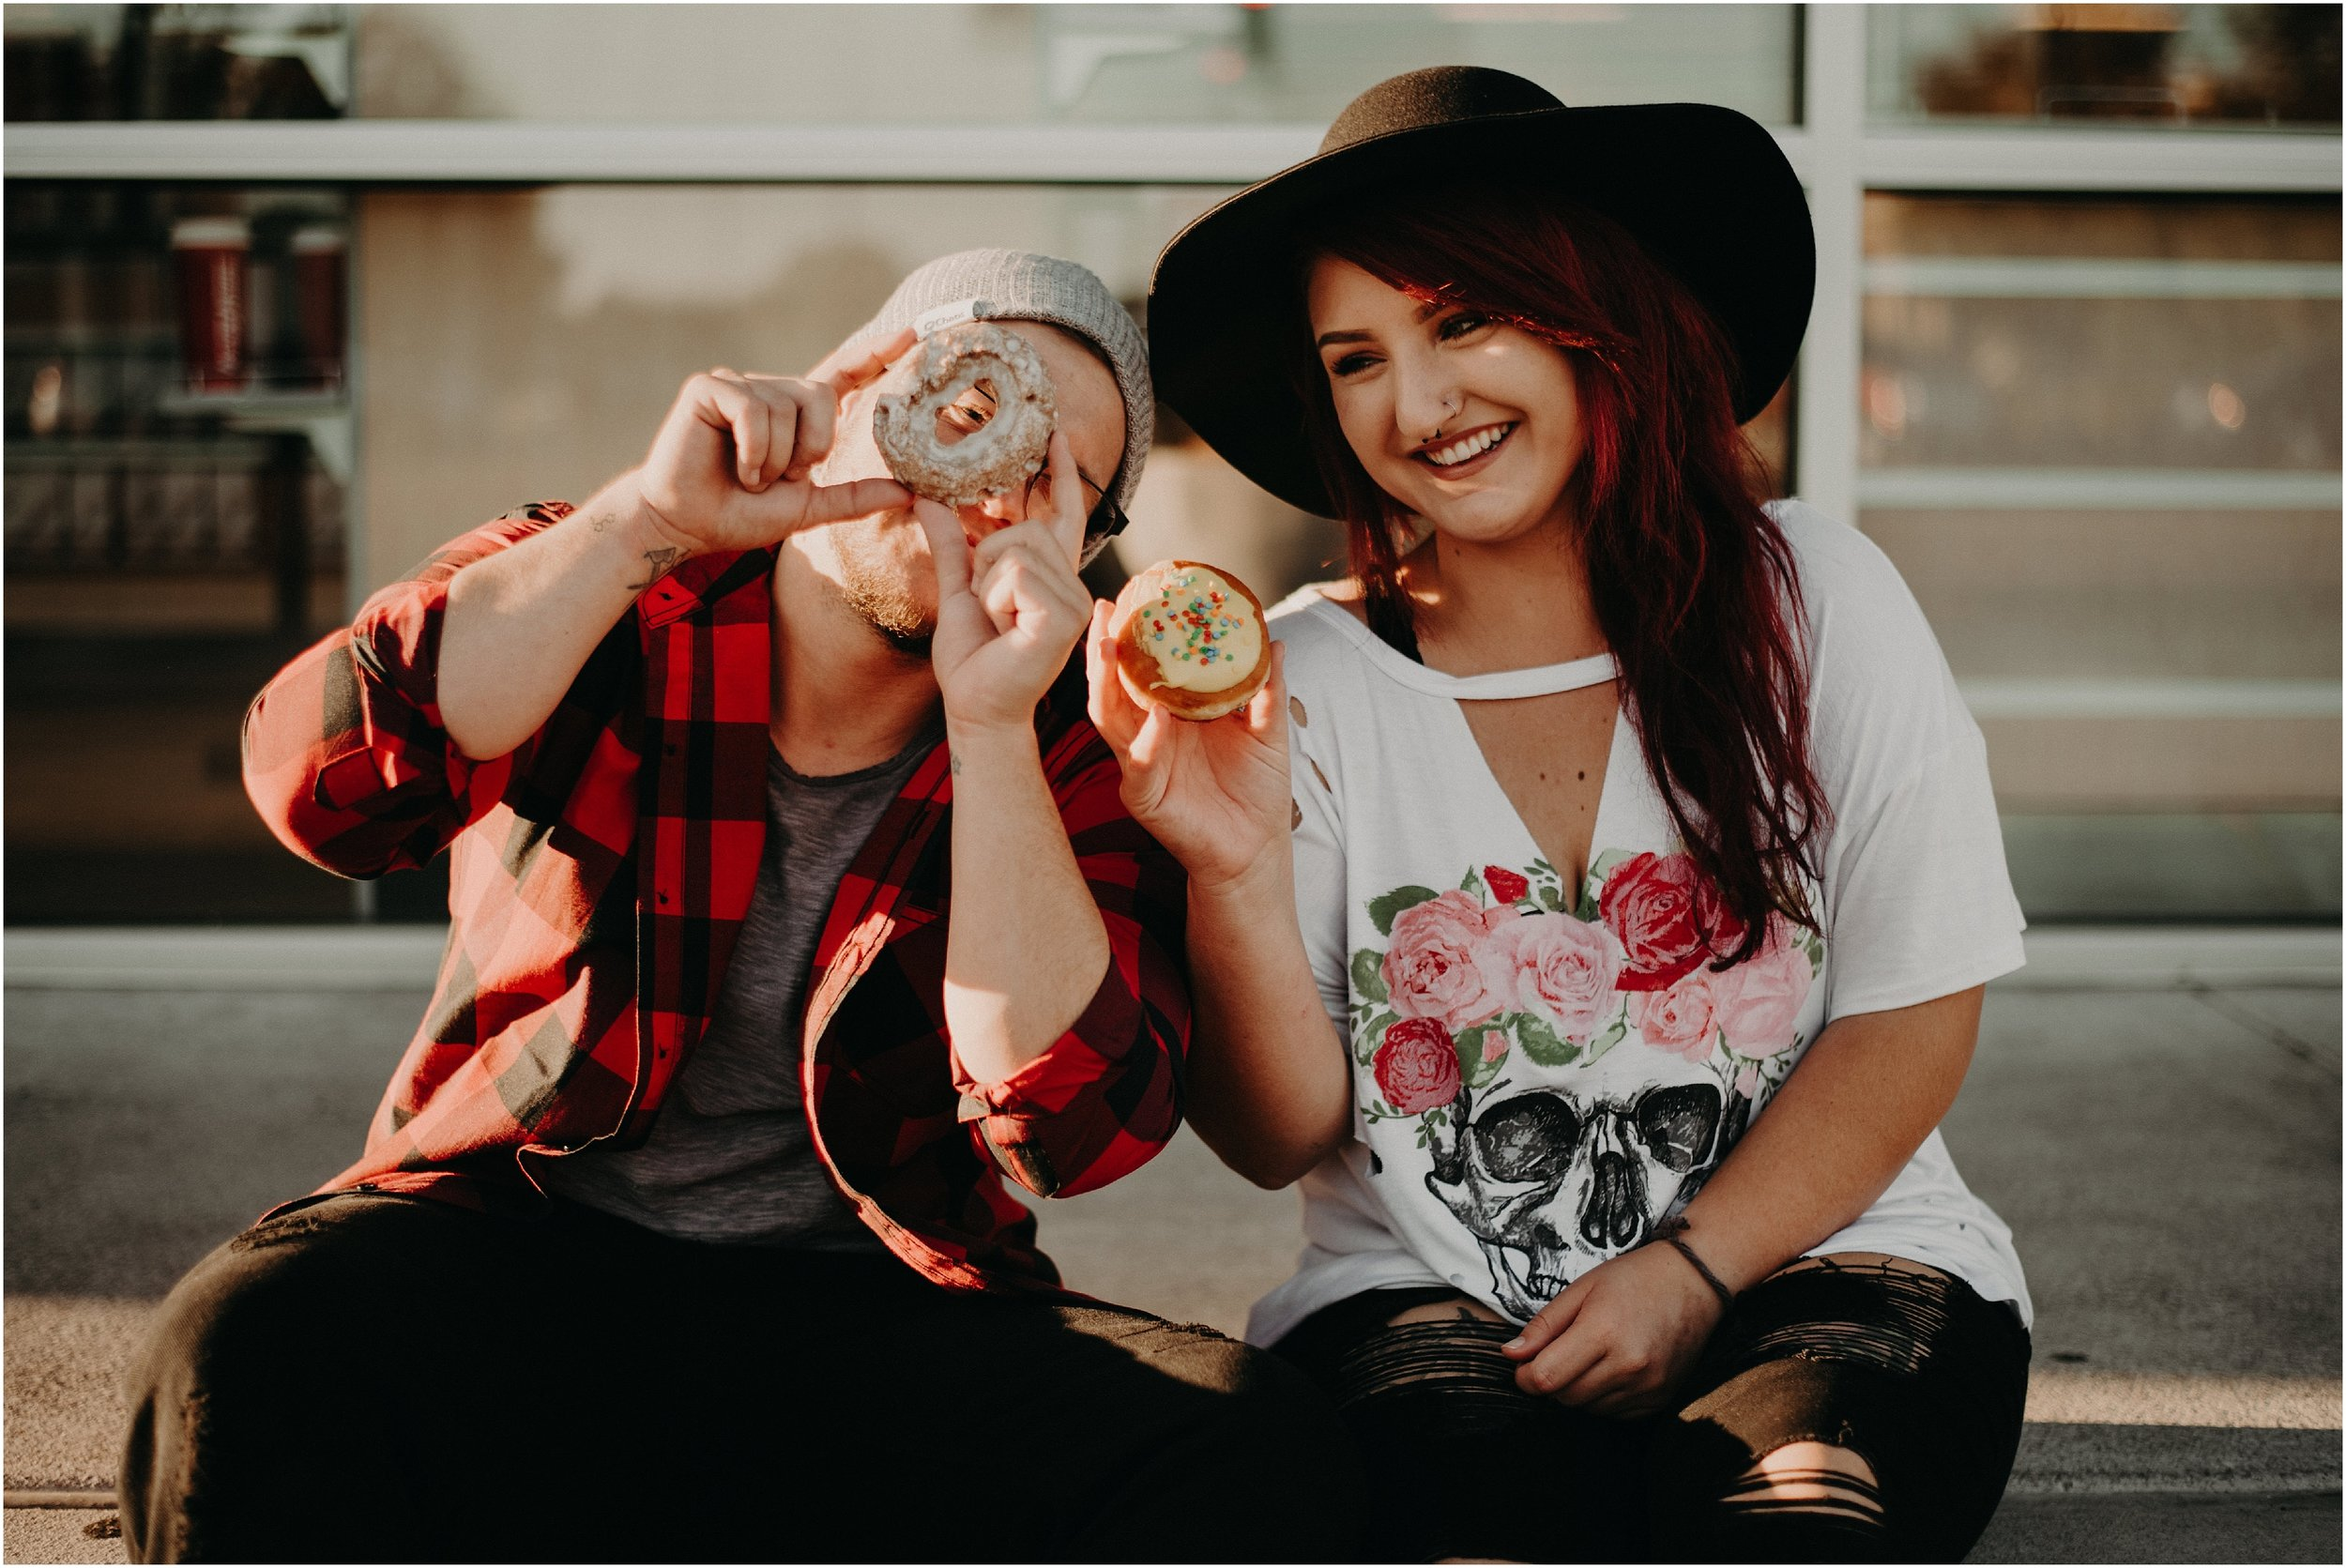 Alternative and hip couple enjoy doughnuts together outside Krispy Kreme in Chattanooga, Tennessee